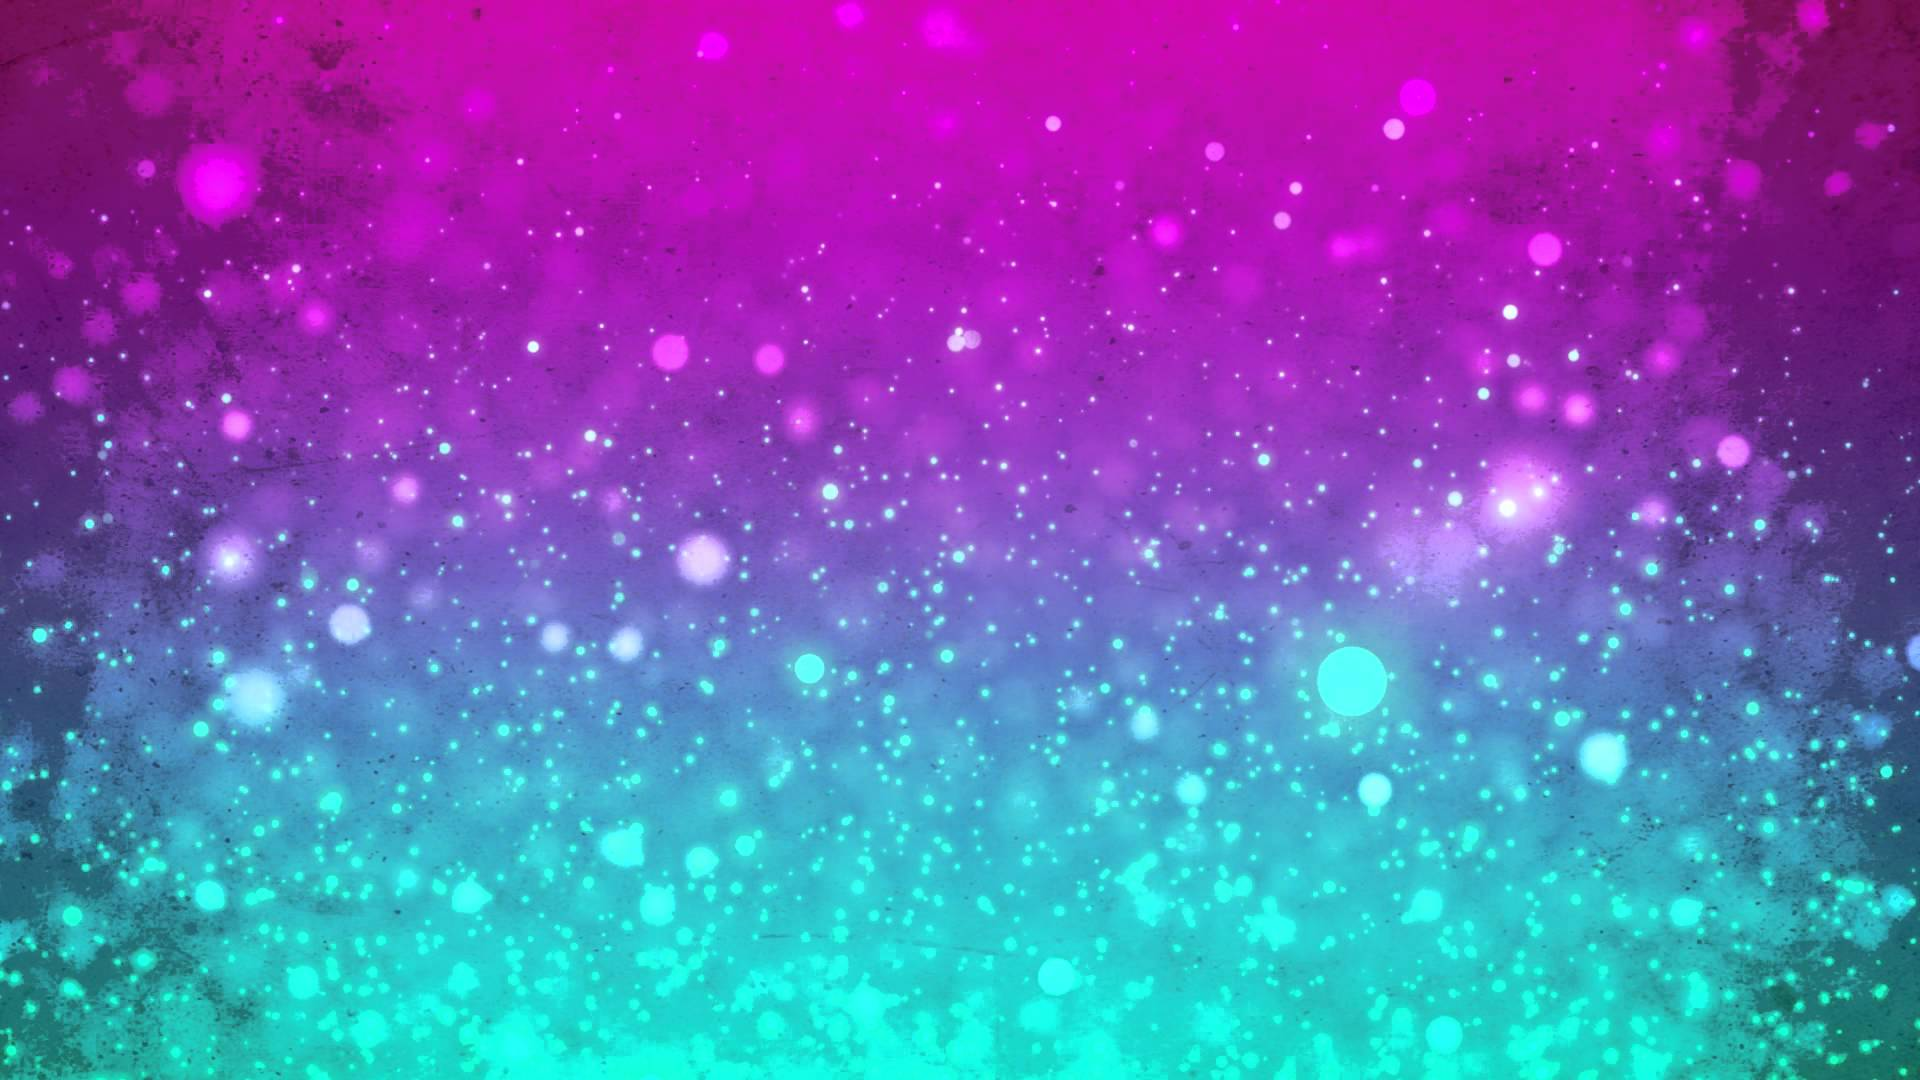 Purple and Blue Shiny Backgrounds